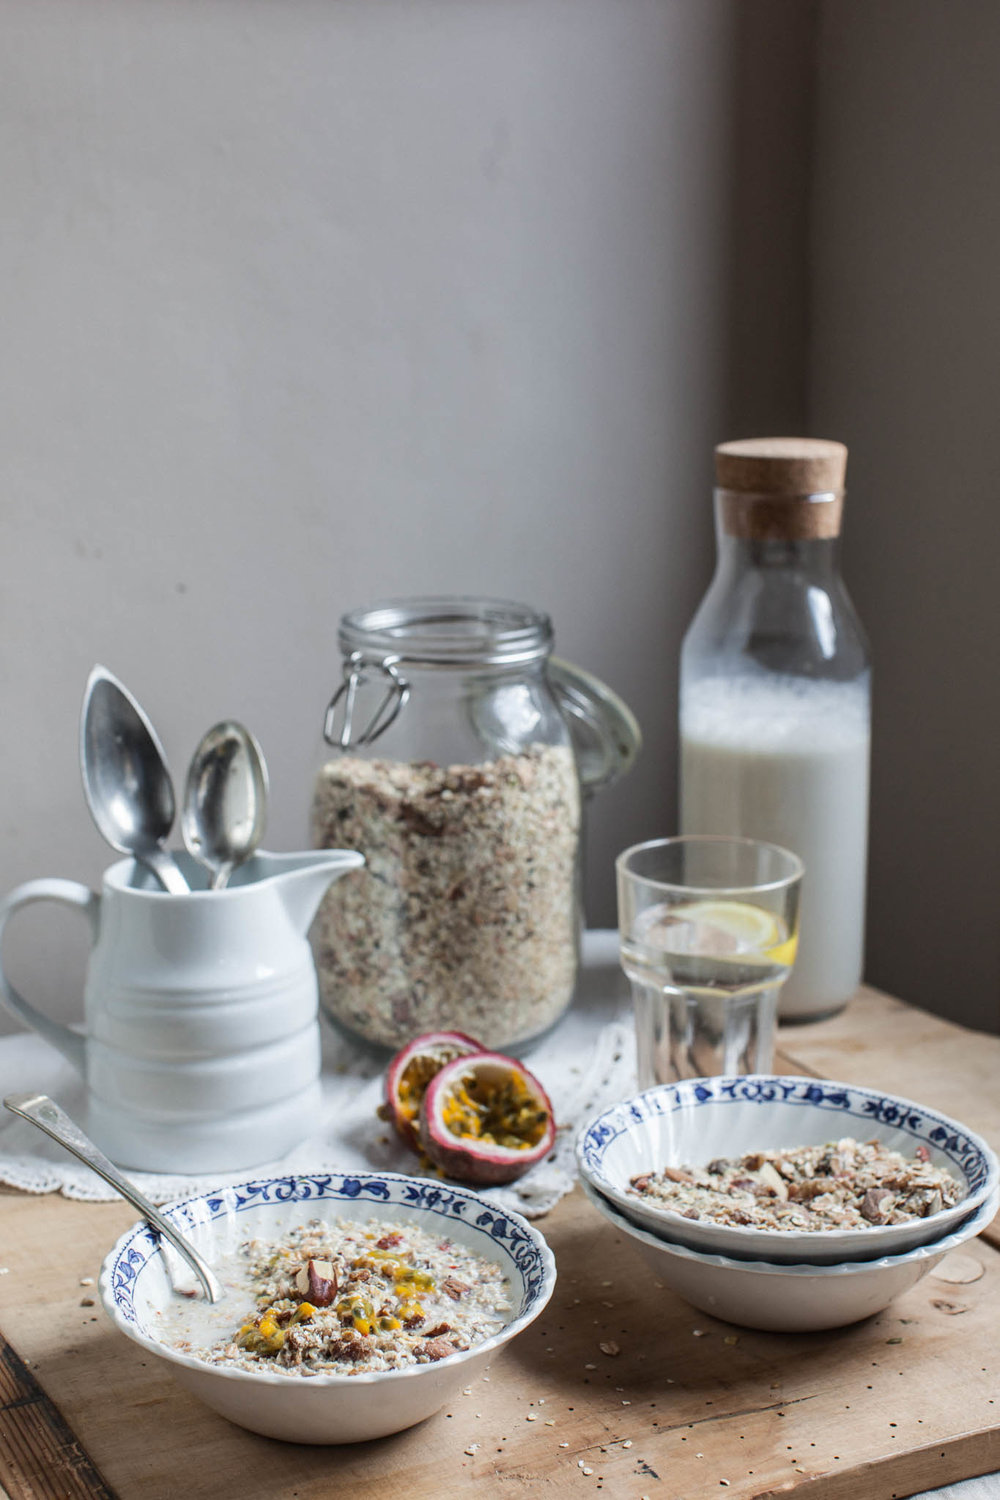 Home made gluten free super muesli recipe. Photography by Sussex photographer Emma Gutteridge